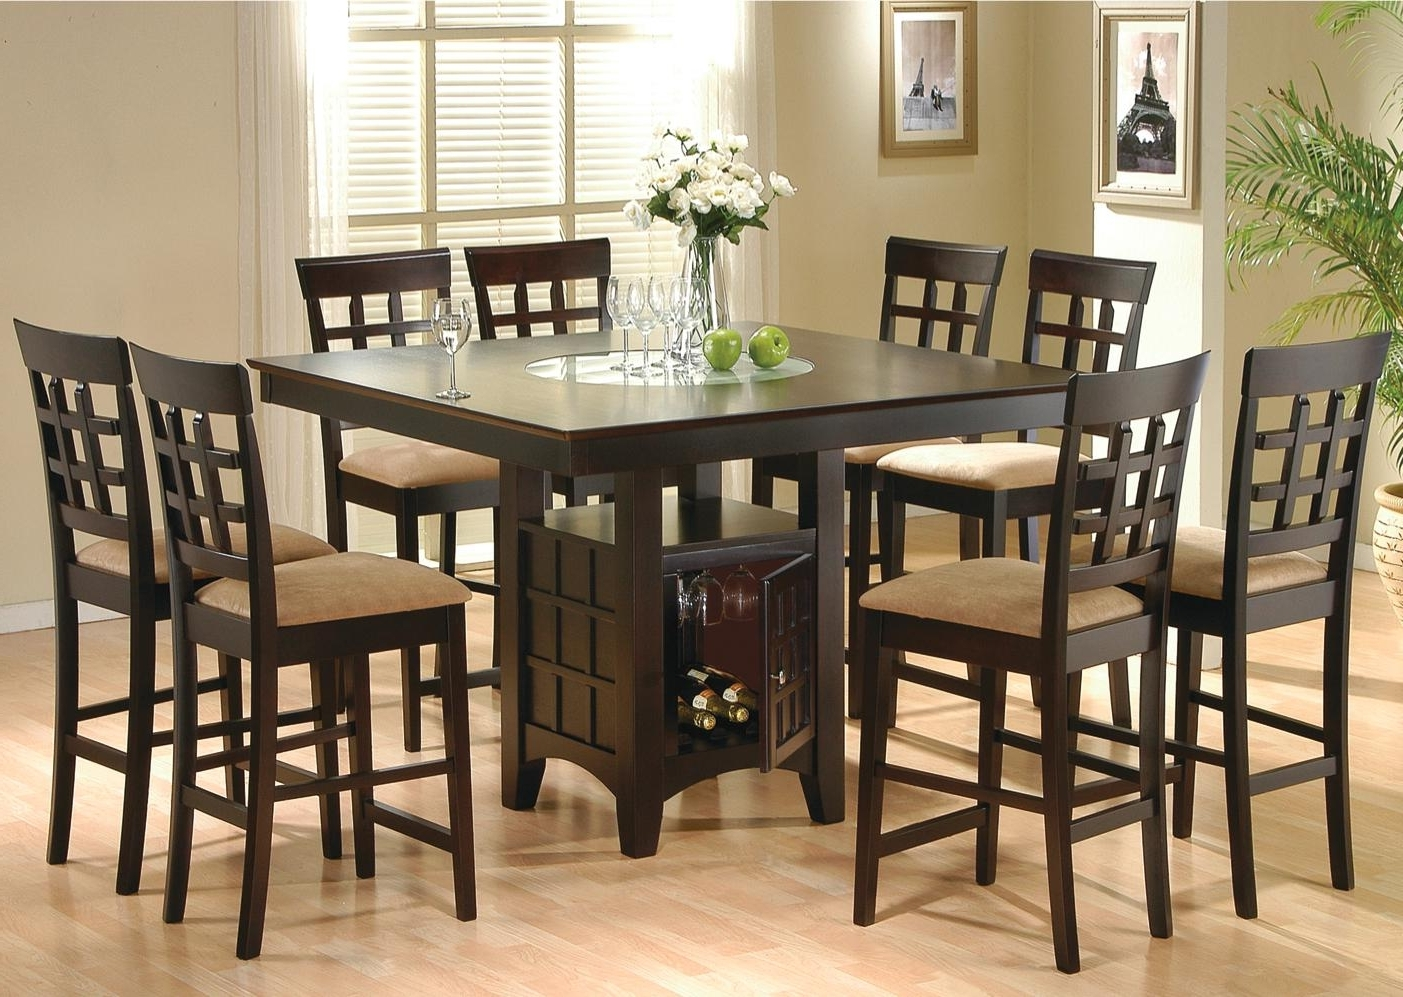 8 Chairs Dining Tables Pertaining To Most Popular 8 Chair Dining Room Set – Www.cheekybeaglestudios (Gallery 13 of 25)